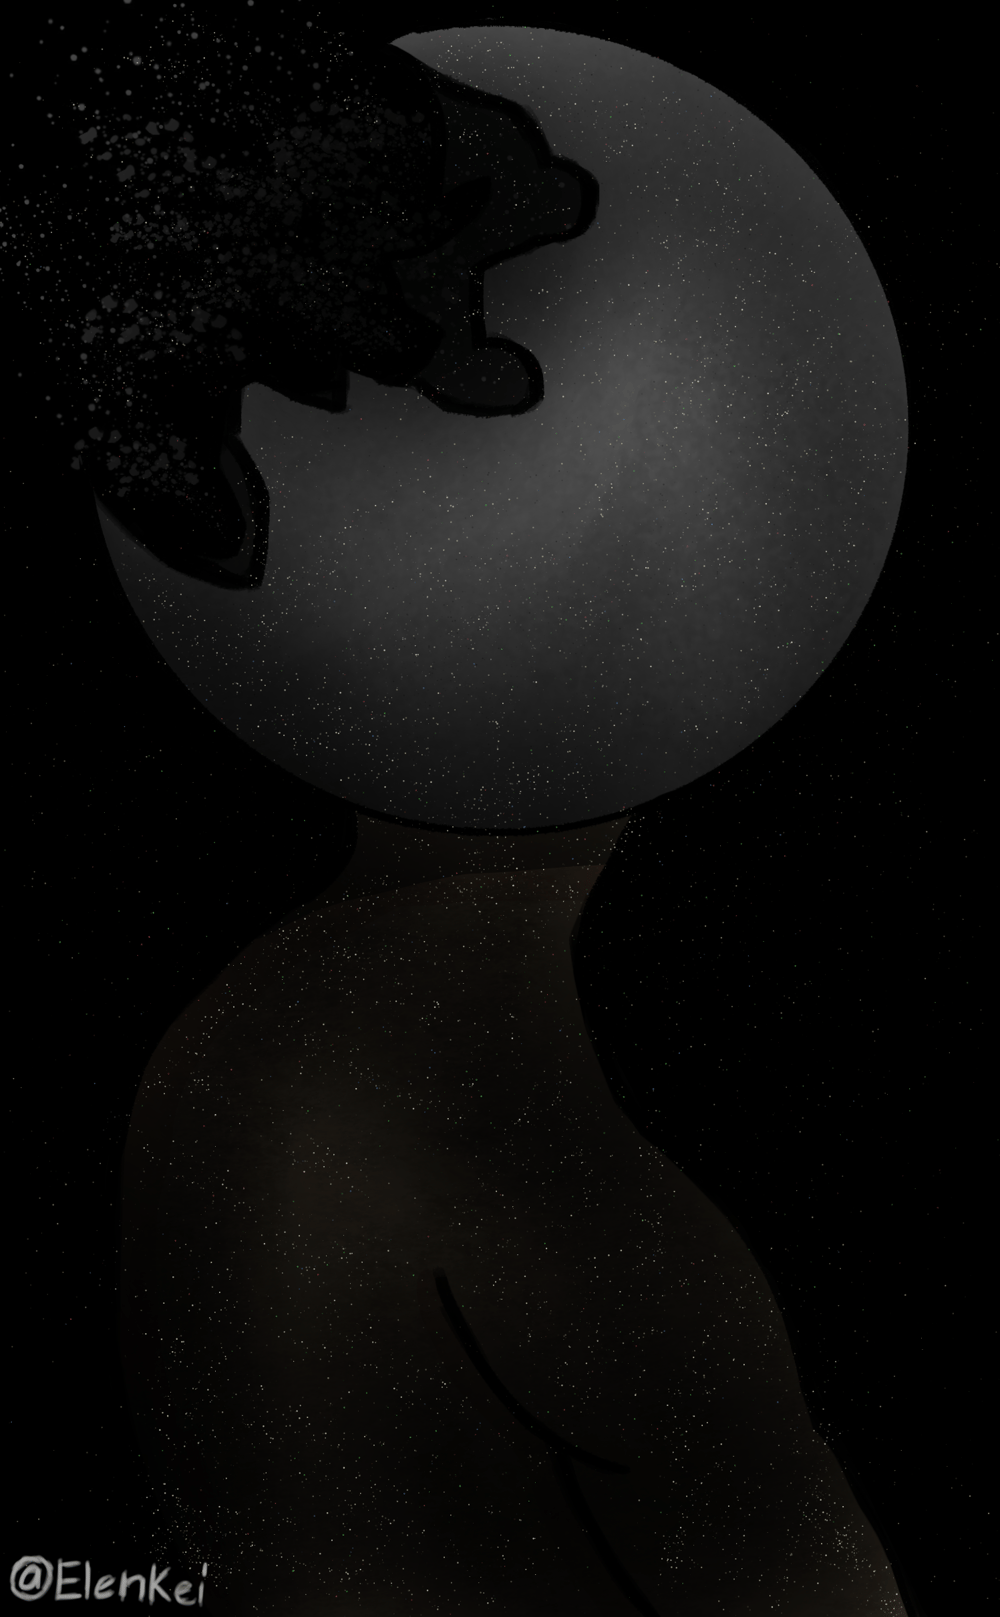 Lonely Moon Guy - image 1 - student project